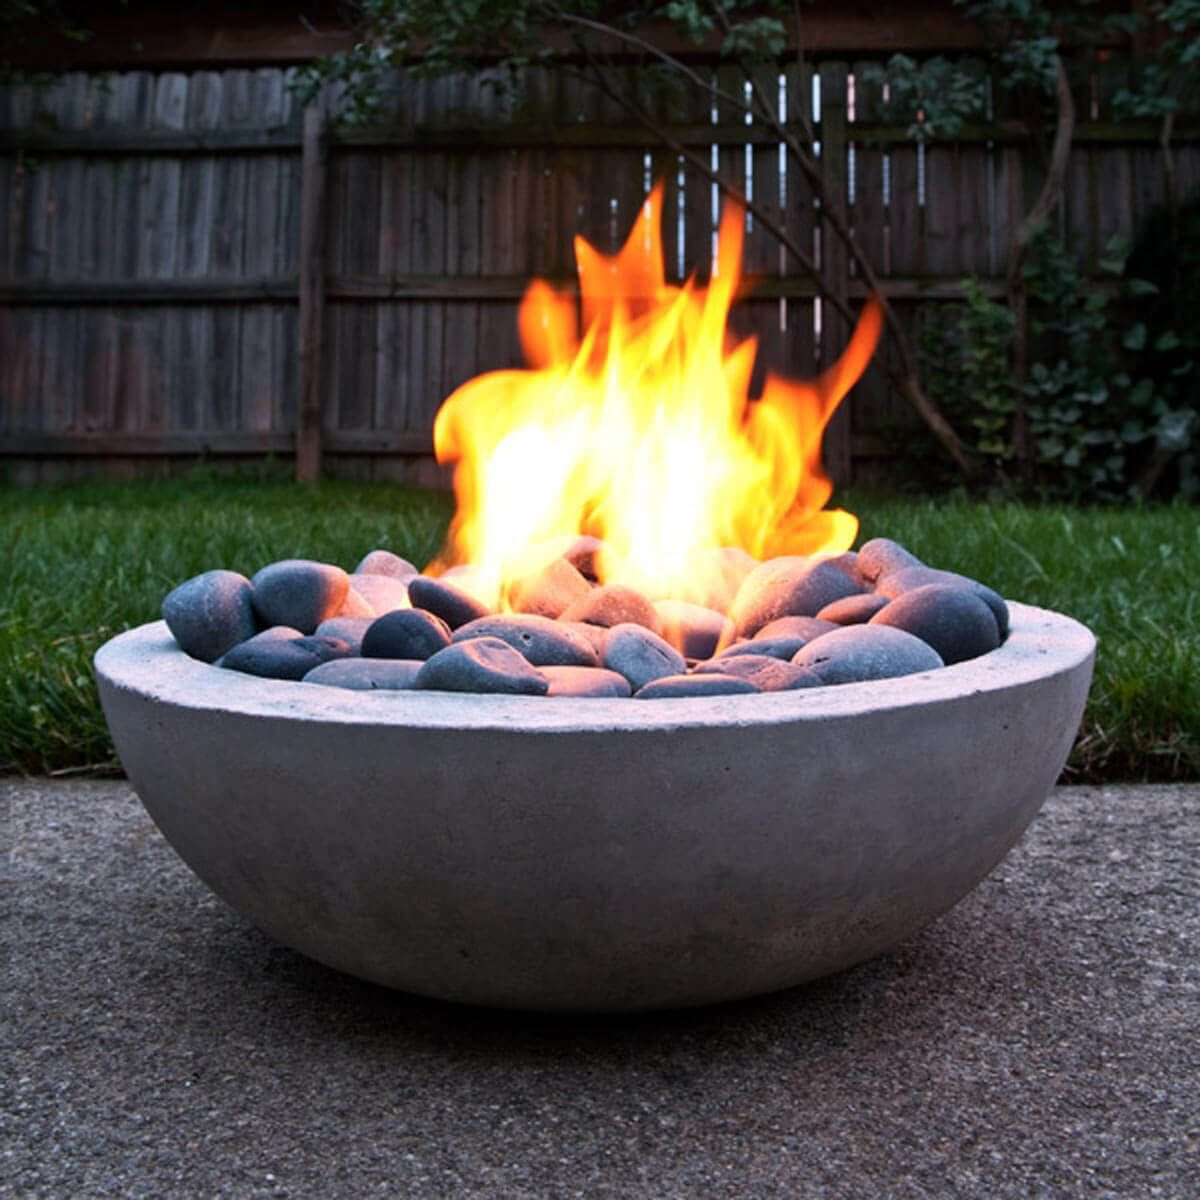 Cool Fire Pit Ideas: Bowl of Fire